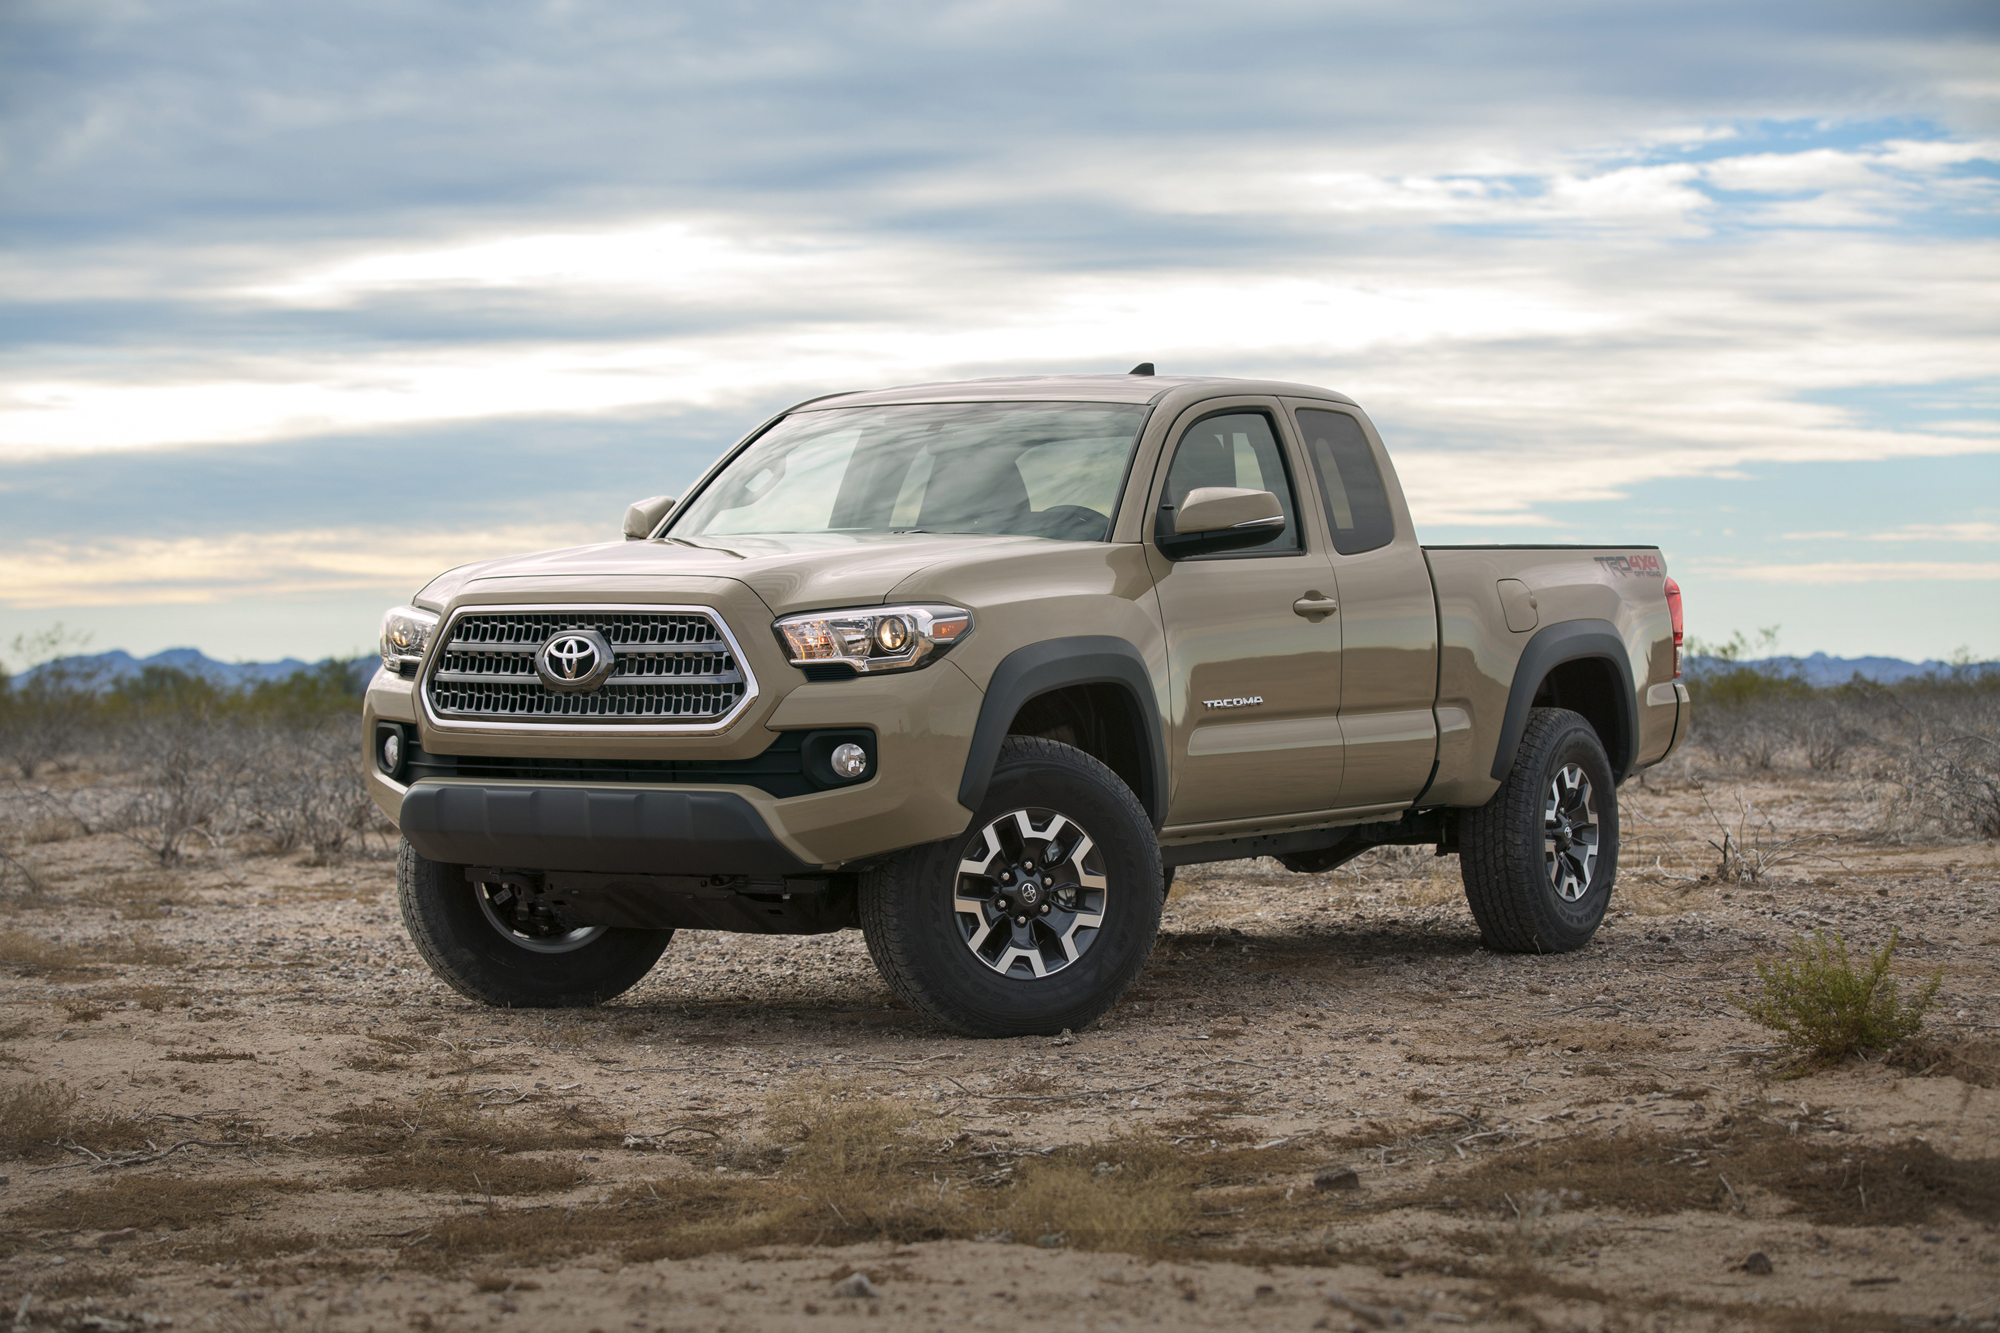 Toyota tacoma diesel not worth it says chief engineer